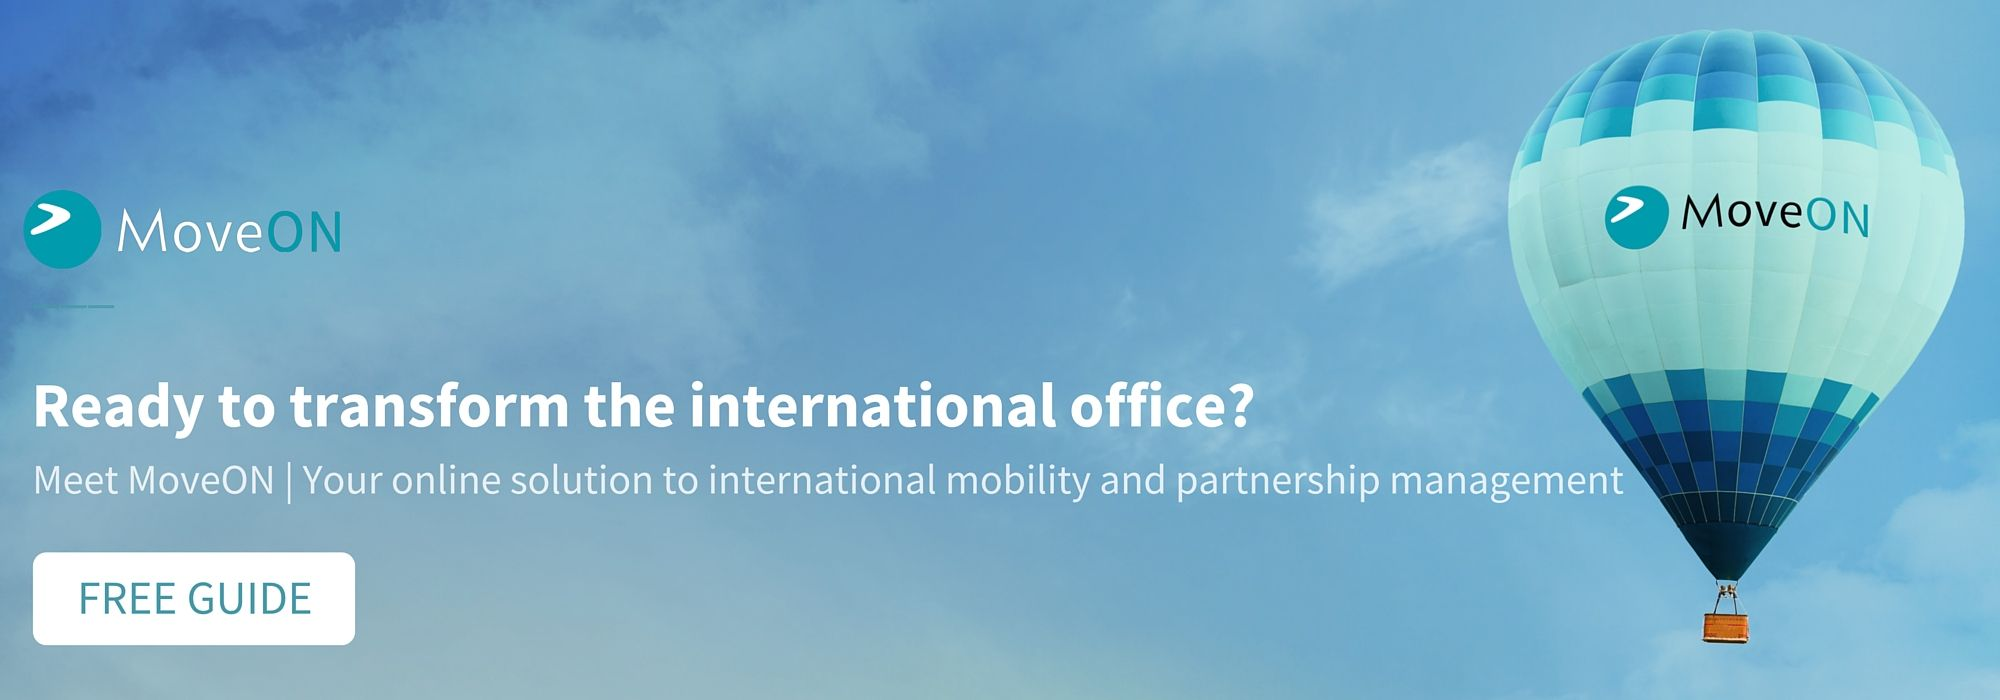 Transform the int office banner_homepage